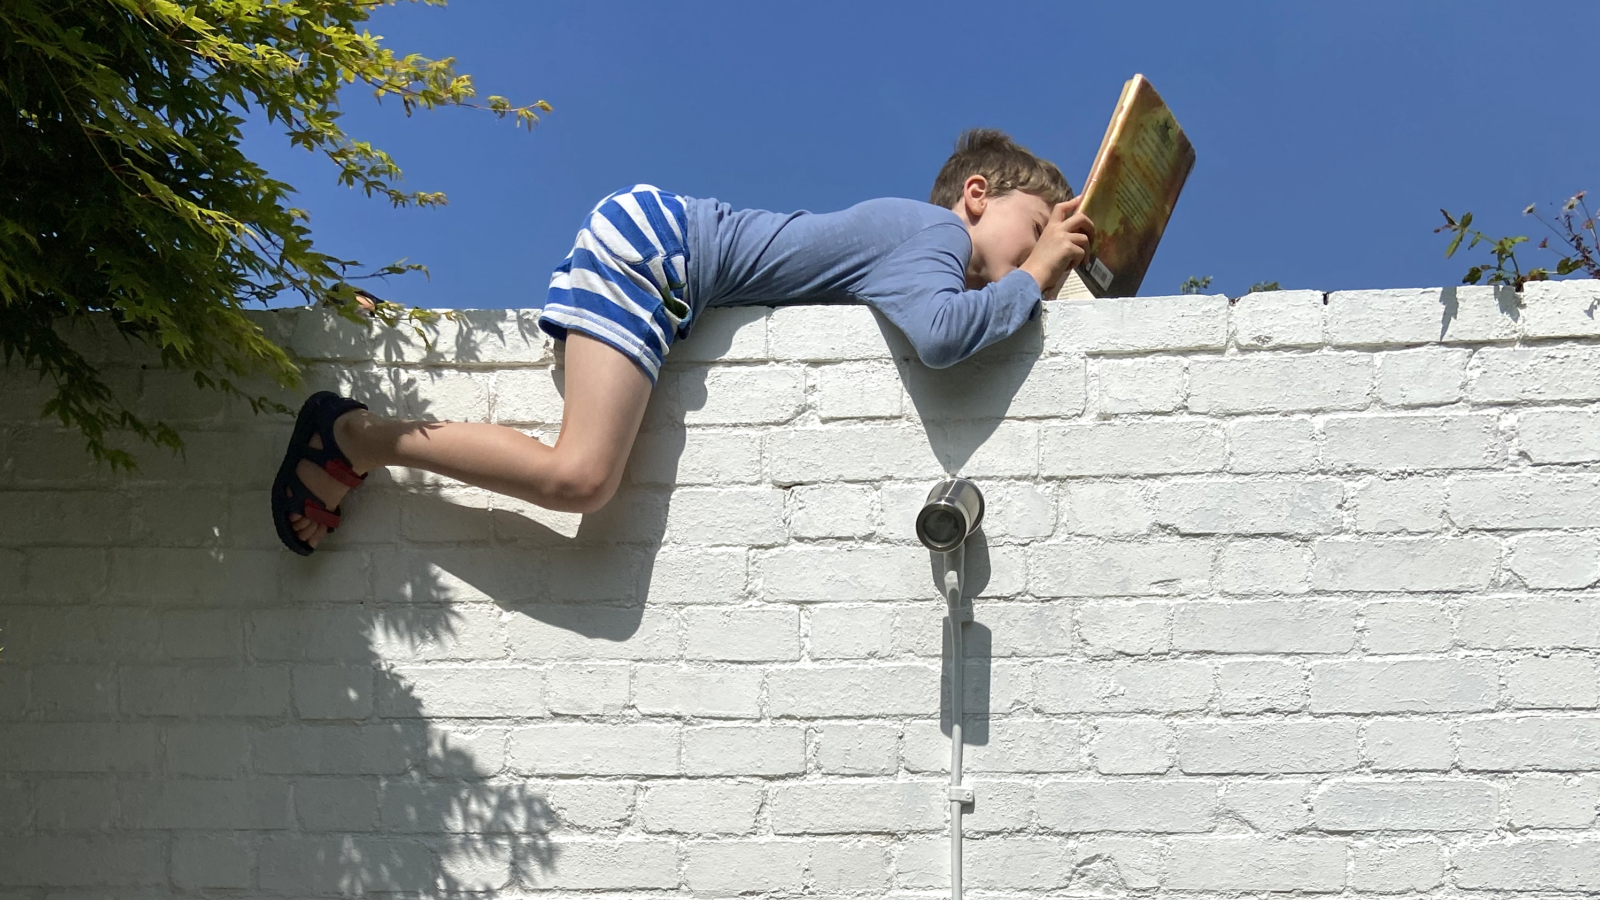 One memorable day in lockdown MAMA.codes CEO Liane let her son scale a garden wall and read up there for a change.